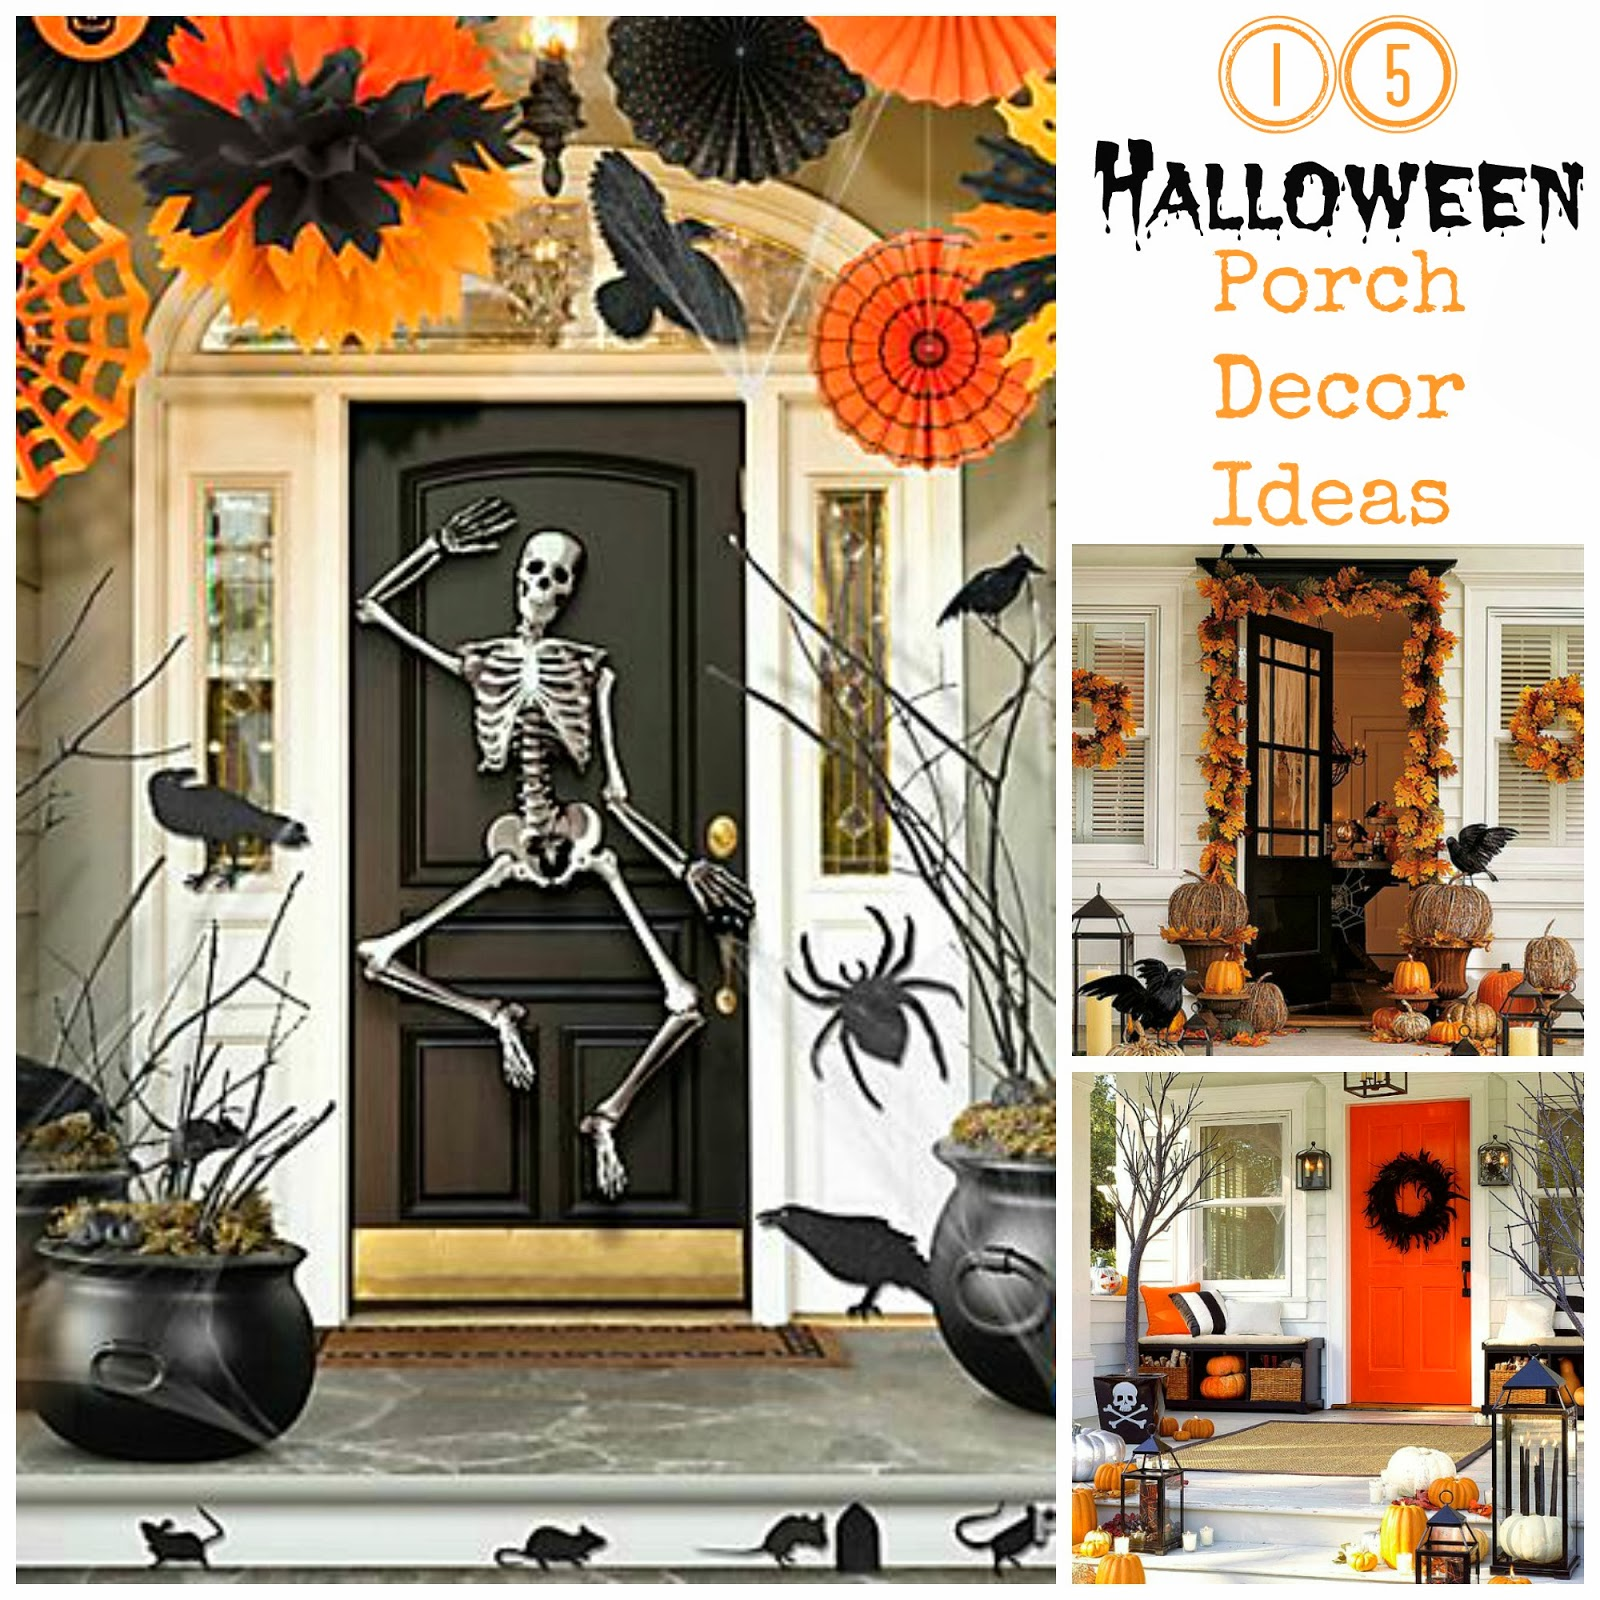 15 halloween porch decor ideas - i dig pinterest